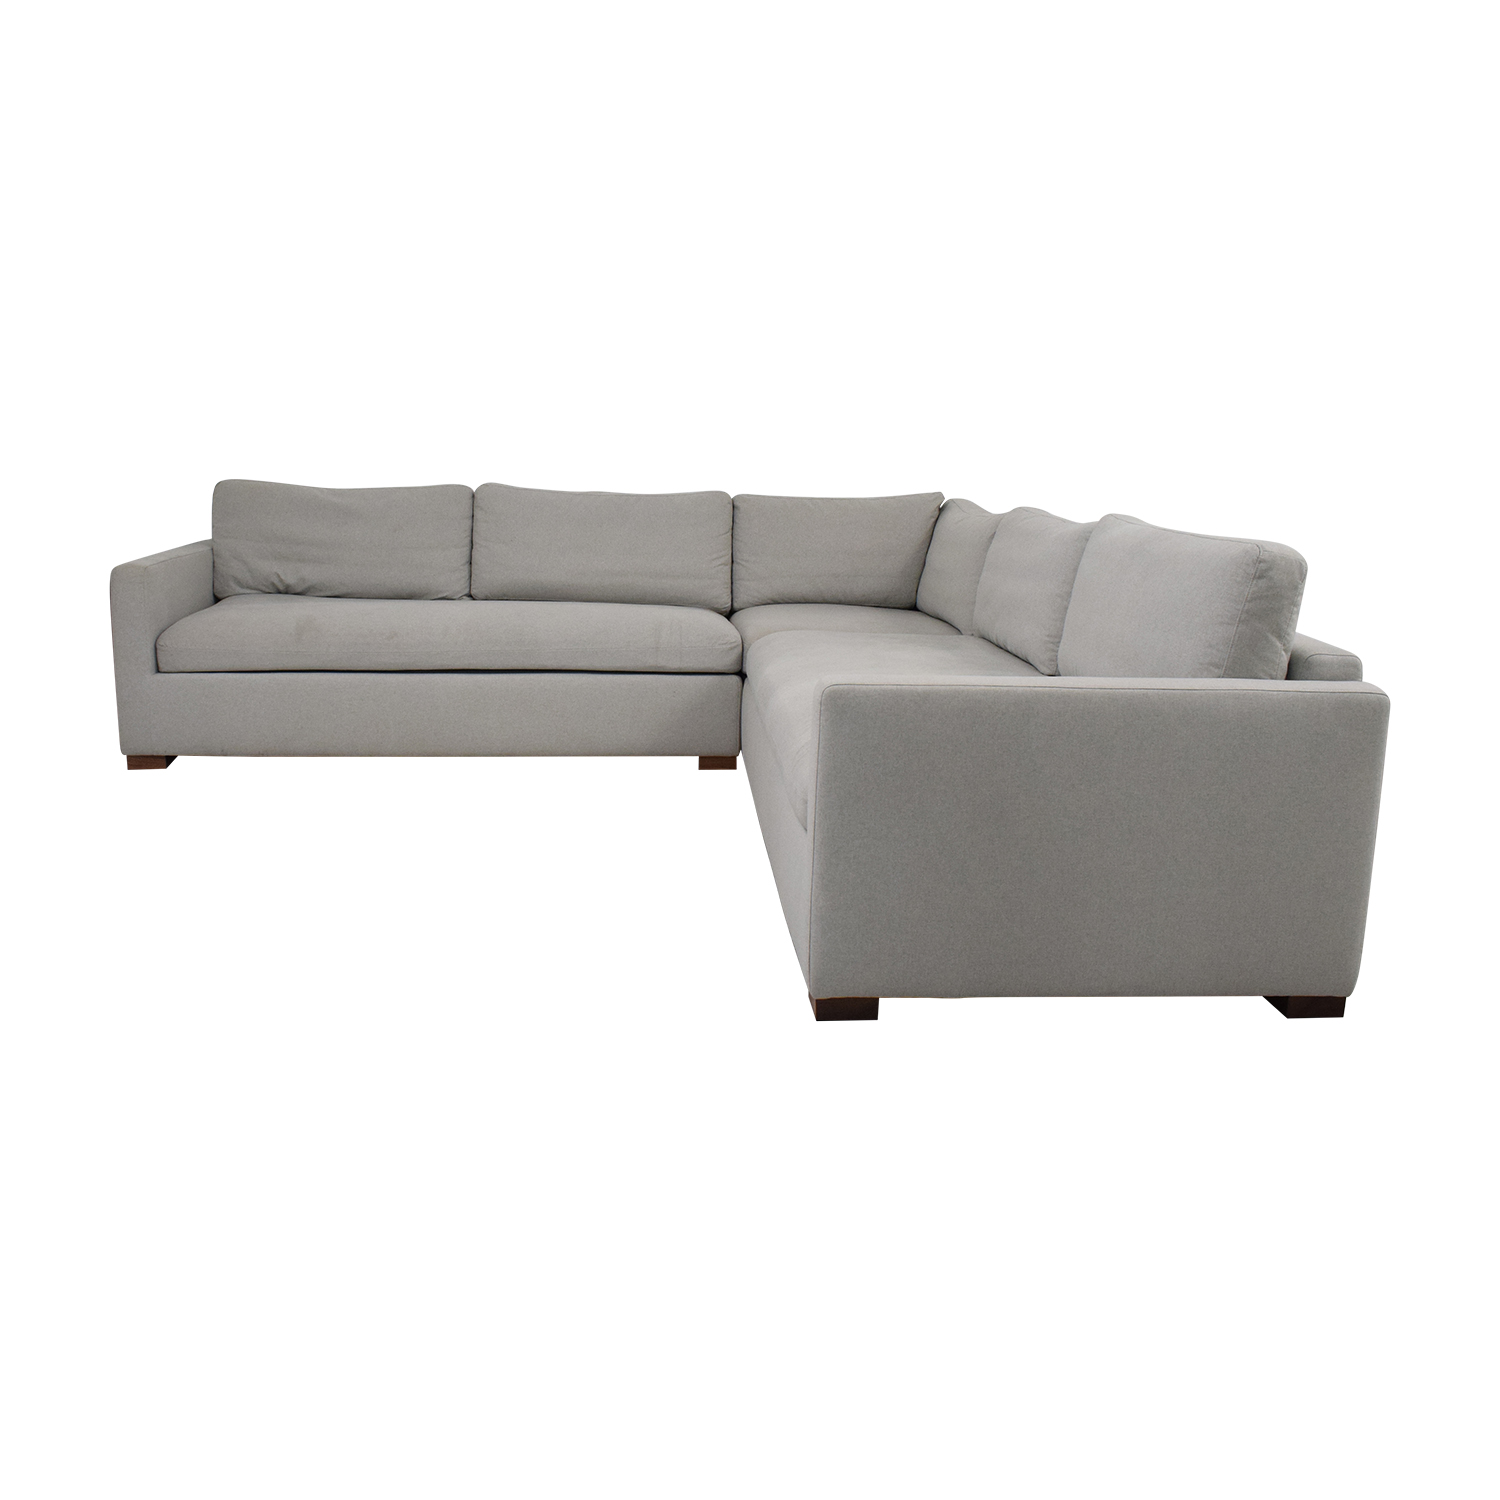 Interior Define Interiror Define Charly Corner Sectional Sofa on sale